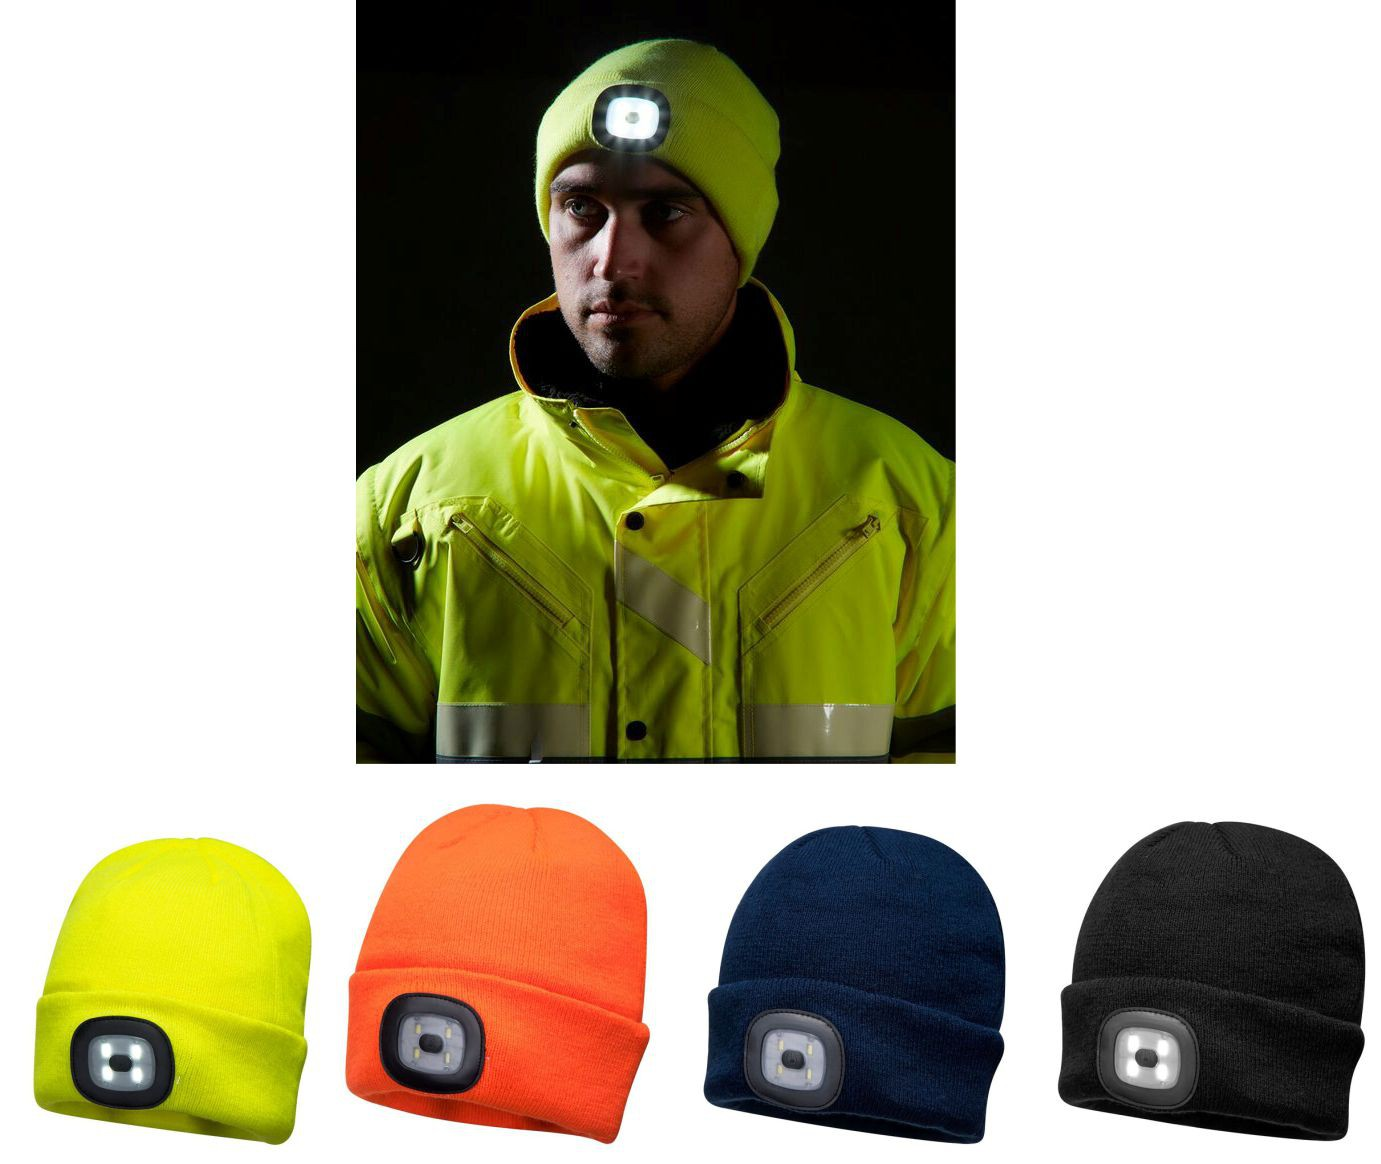 BEANIE HAT YELLOW WITH LED HEAD LIGHT (USB RECHARGEABLE) B029